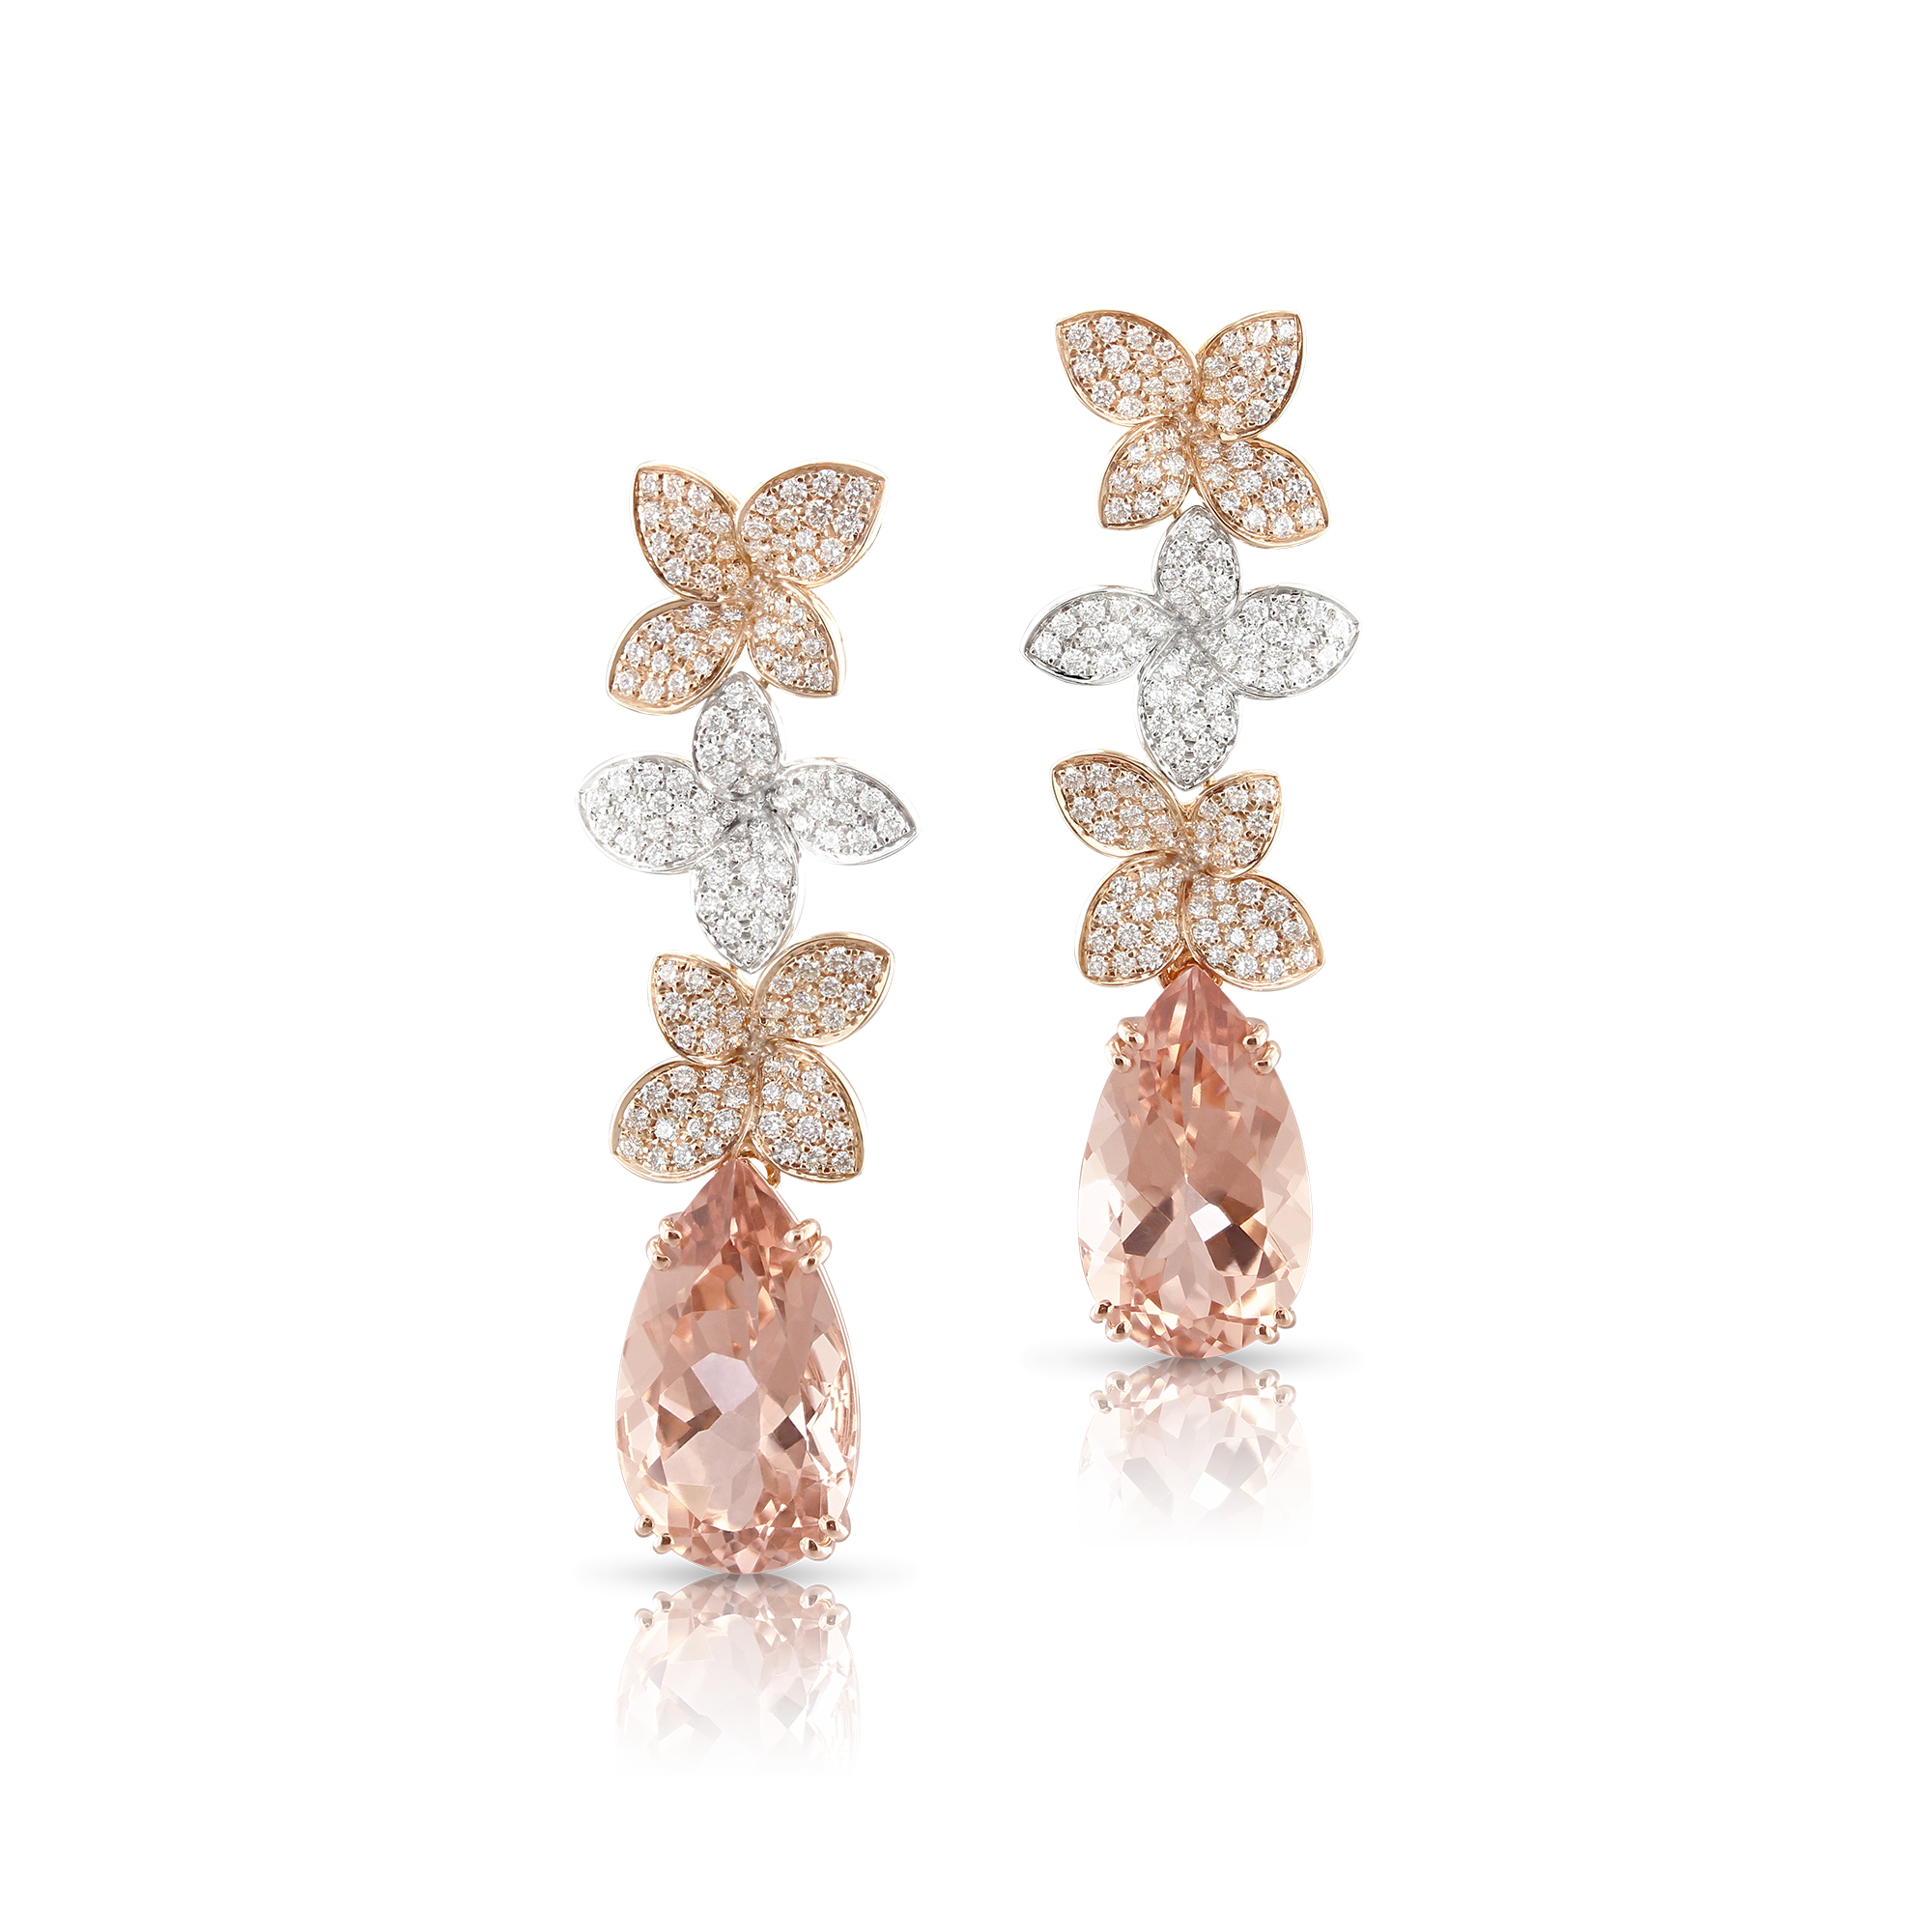 NEW 18k White and Rose Gold Goddess Garden Earrings with White Diamonds, Champagne Diamonds and Morganite